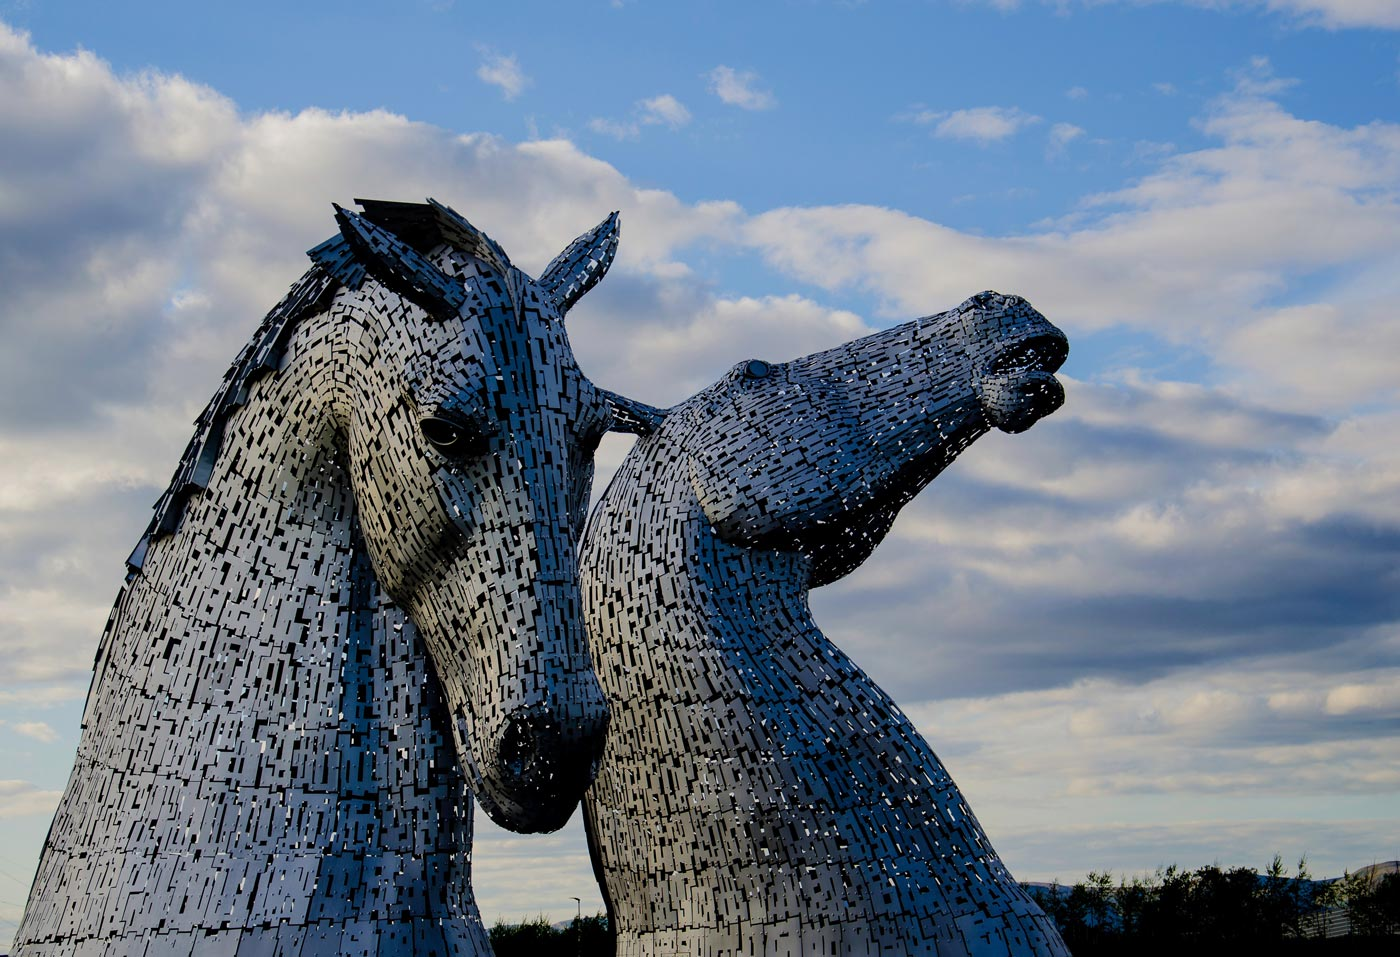 Kelpies Falkirk, Glamping, Pods, Camping, Country, Woodland, short break, family accommodation, couples break, barbeque pit, Holiday Accommodation & Apartments, Falkirk, Linlithgow, Stirling, Edinburgh, Glasgow Scotland